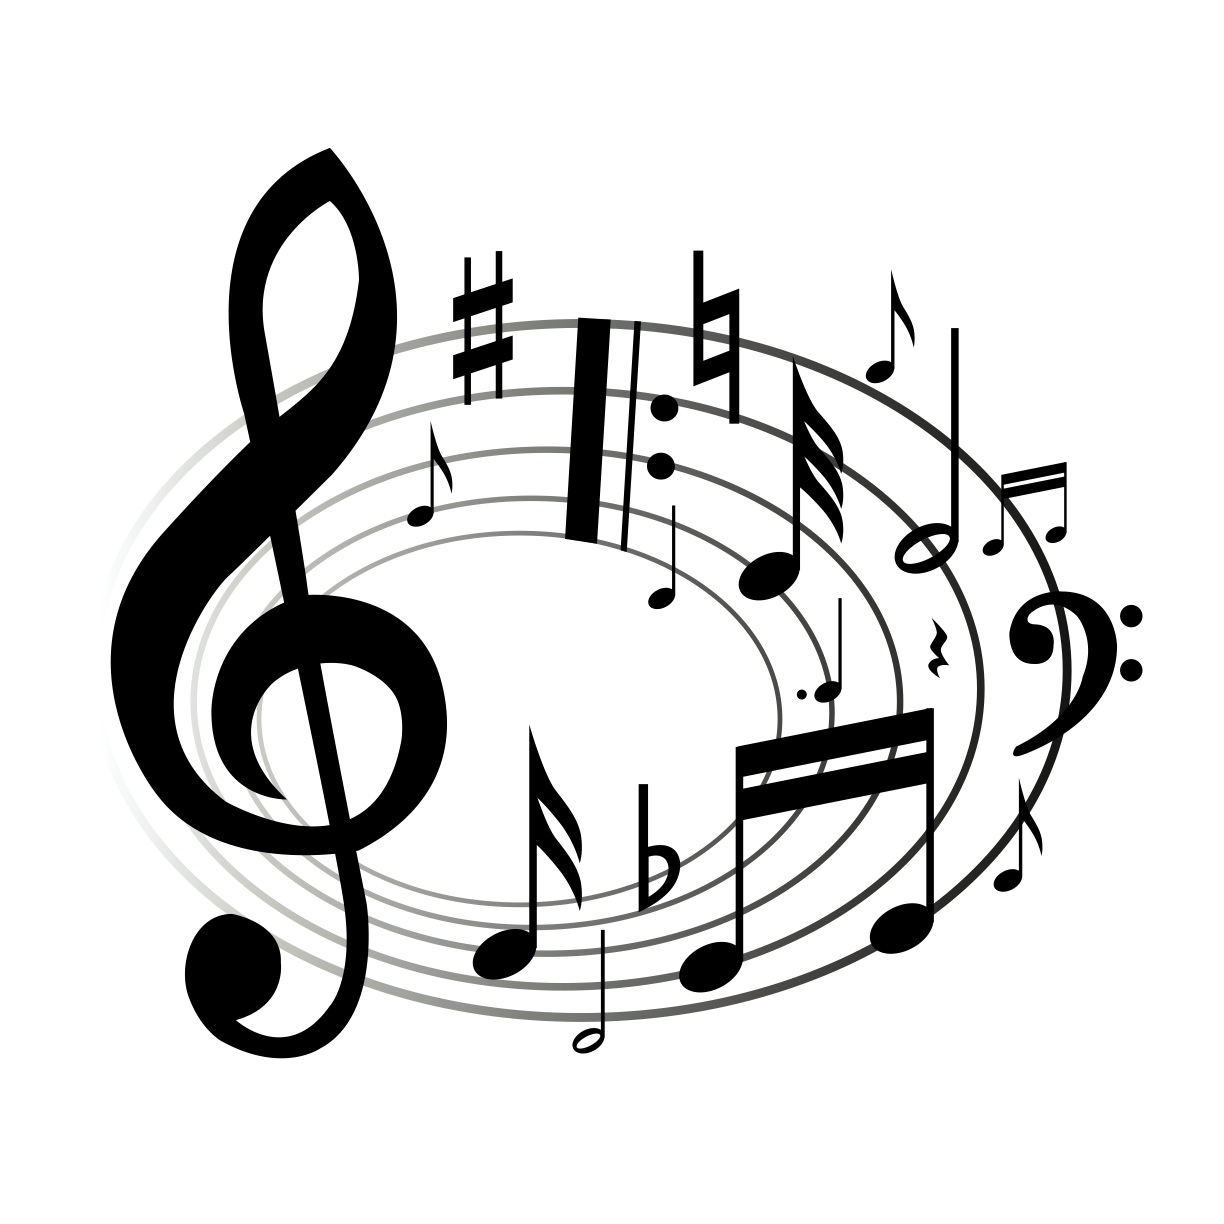 hight resolution of clipart music notes